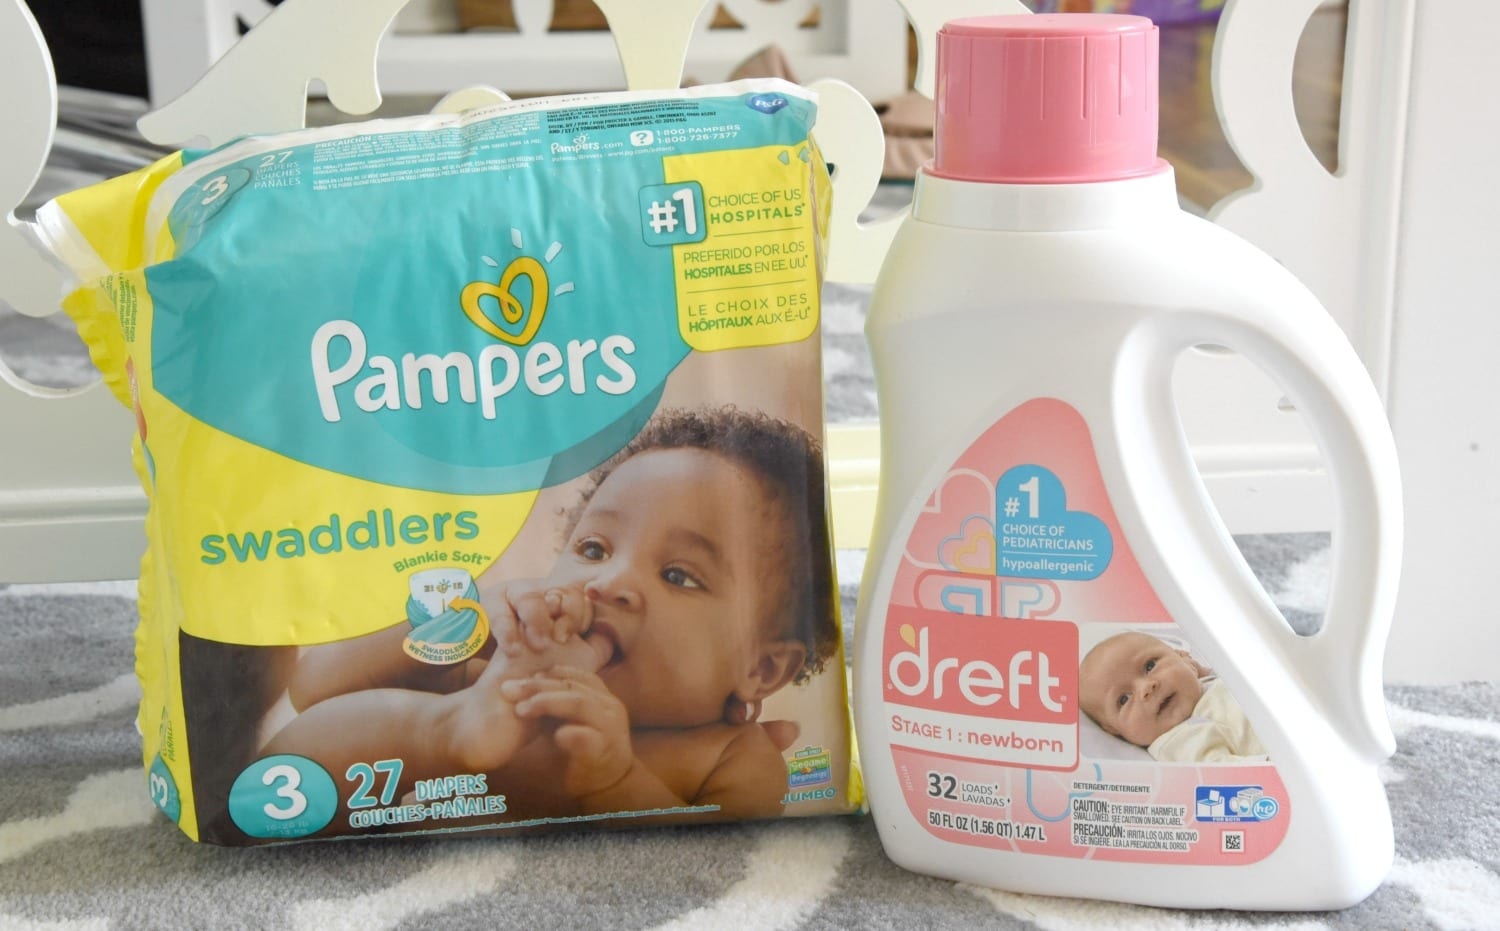 Pampers and Dreft